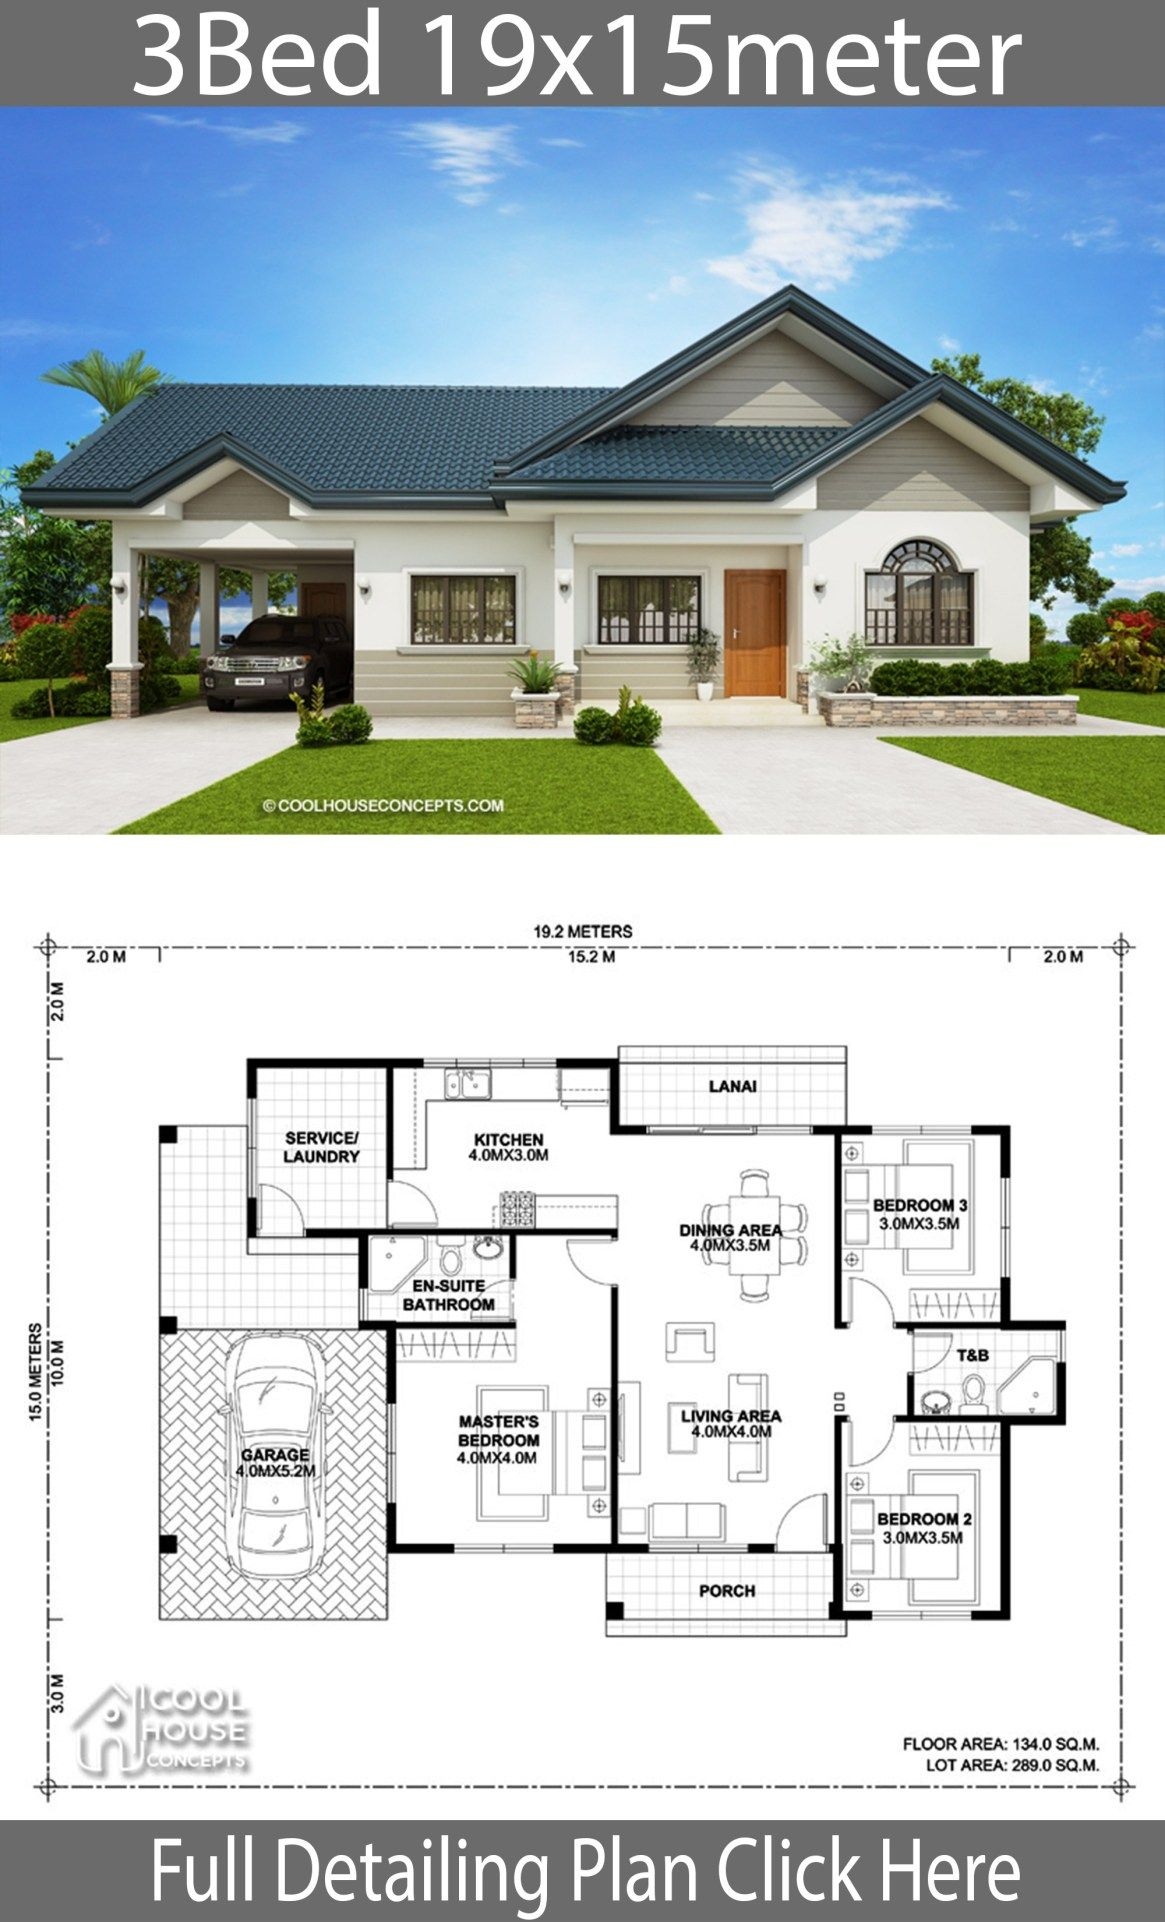 Home Design Plan 19x15m With 3 Bedrooms Home Design With Plansearch Beautiful House Plans House Plan Gallery Affordable House Plans